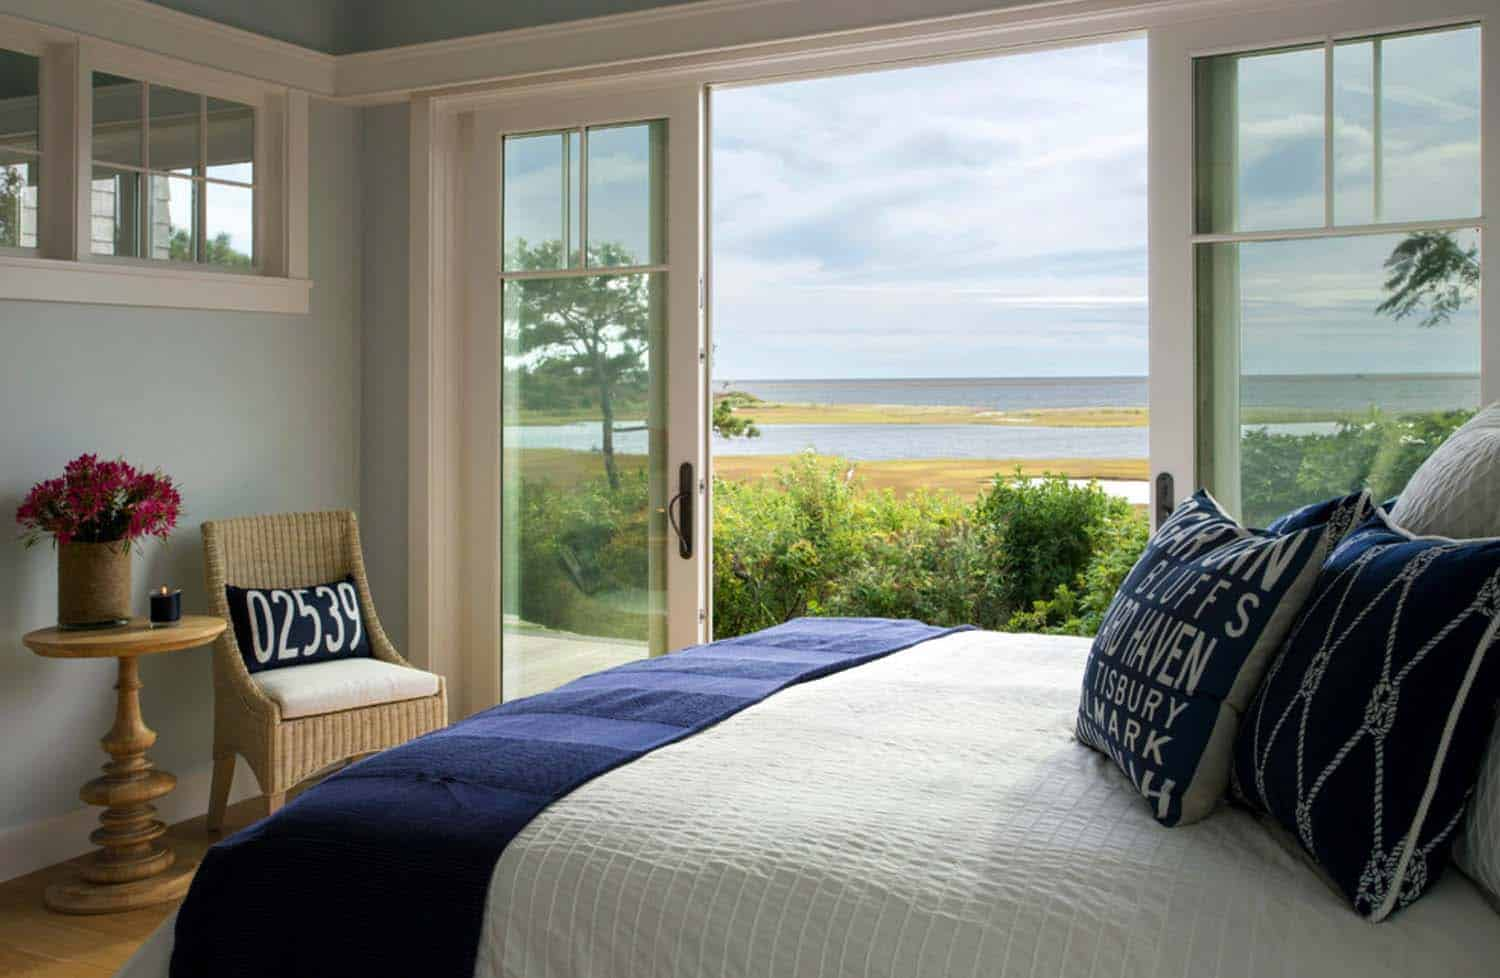 Beach House-Marthas Vineyard Interior Design-11-1 Kindesign